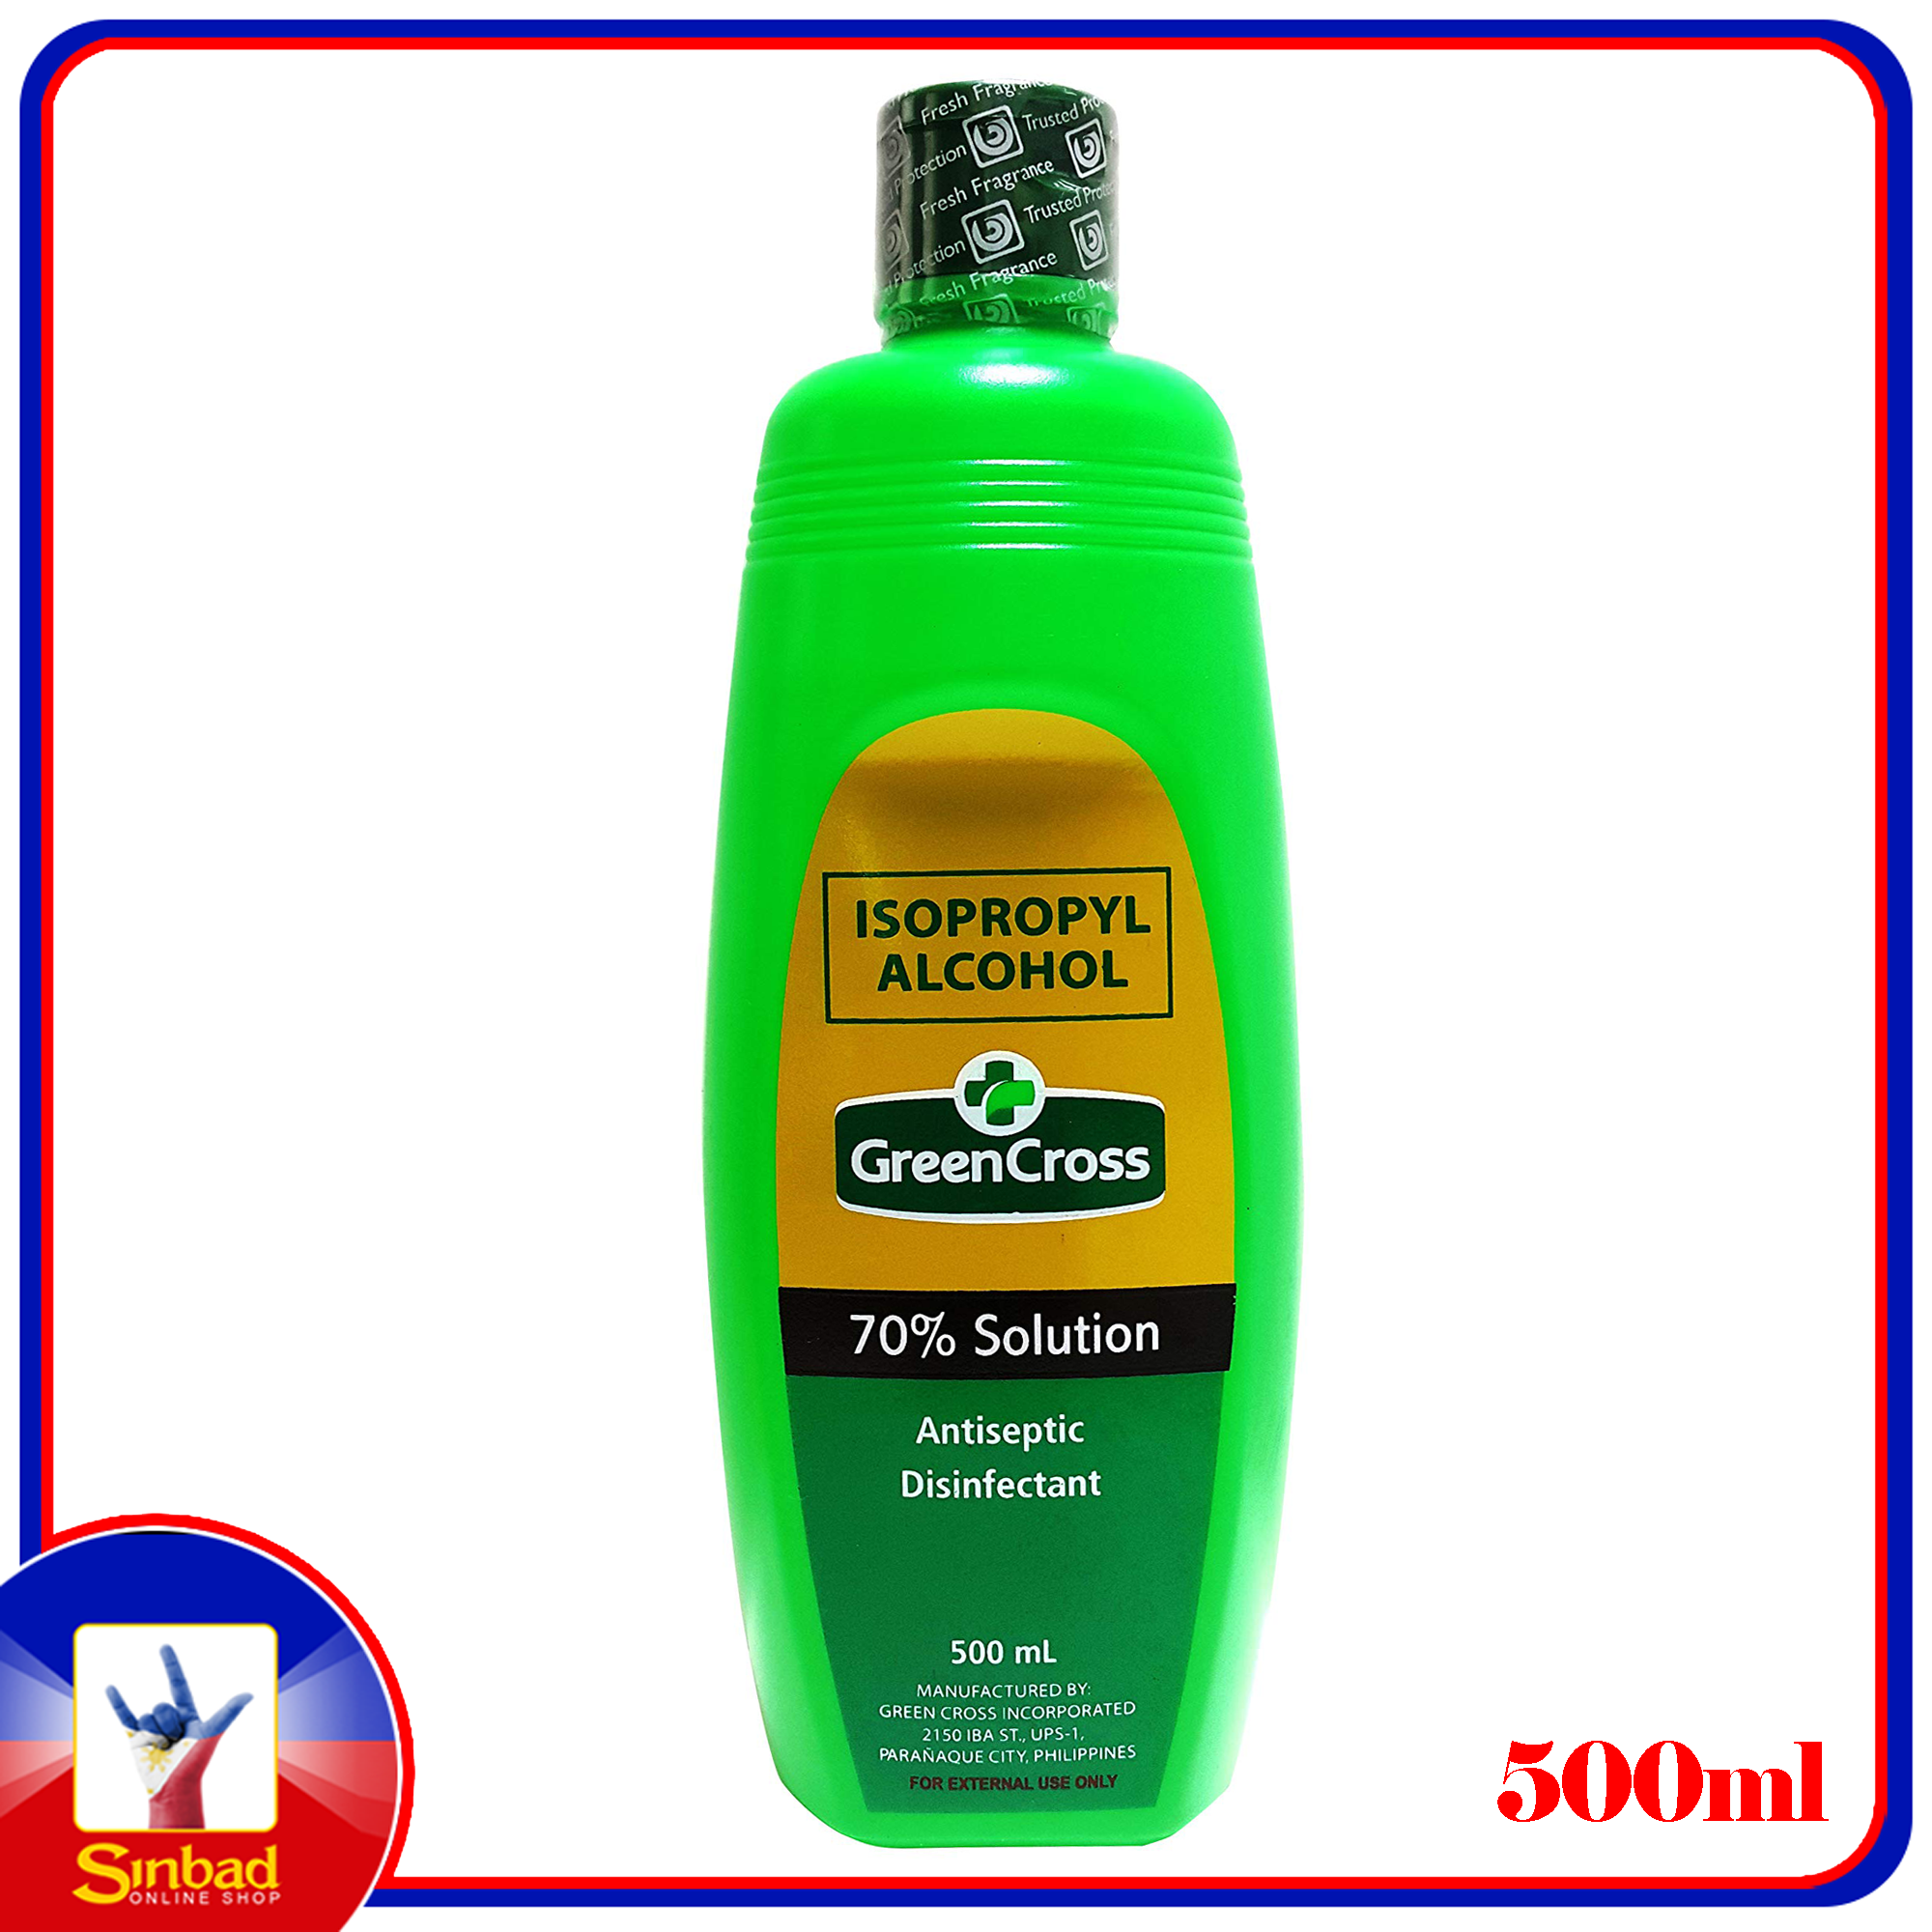 isopropyl alcohol green cross 70% solution antiseptic disinfectant 500ml